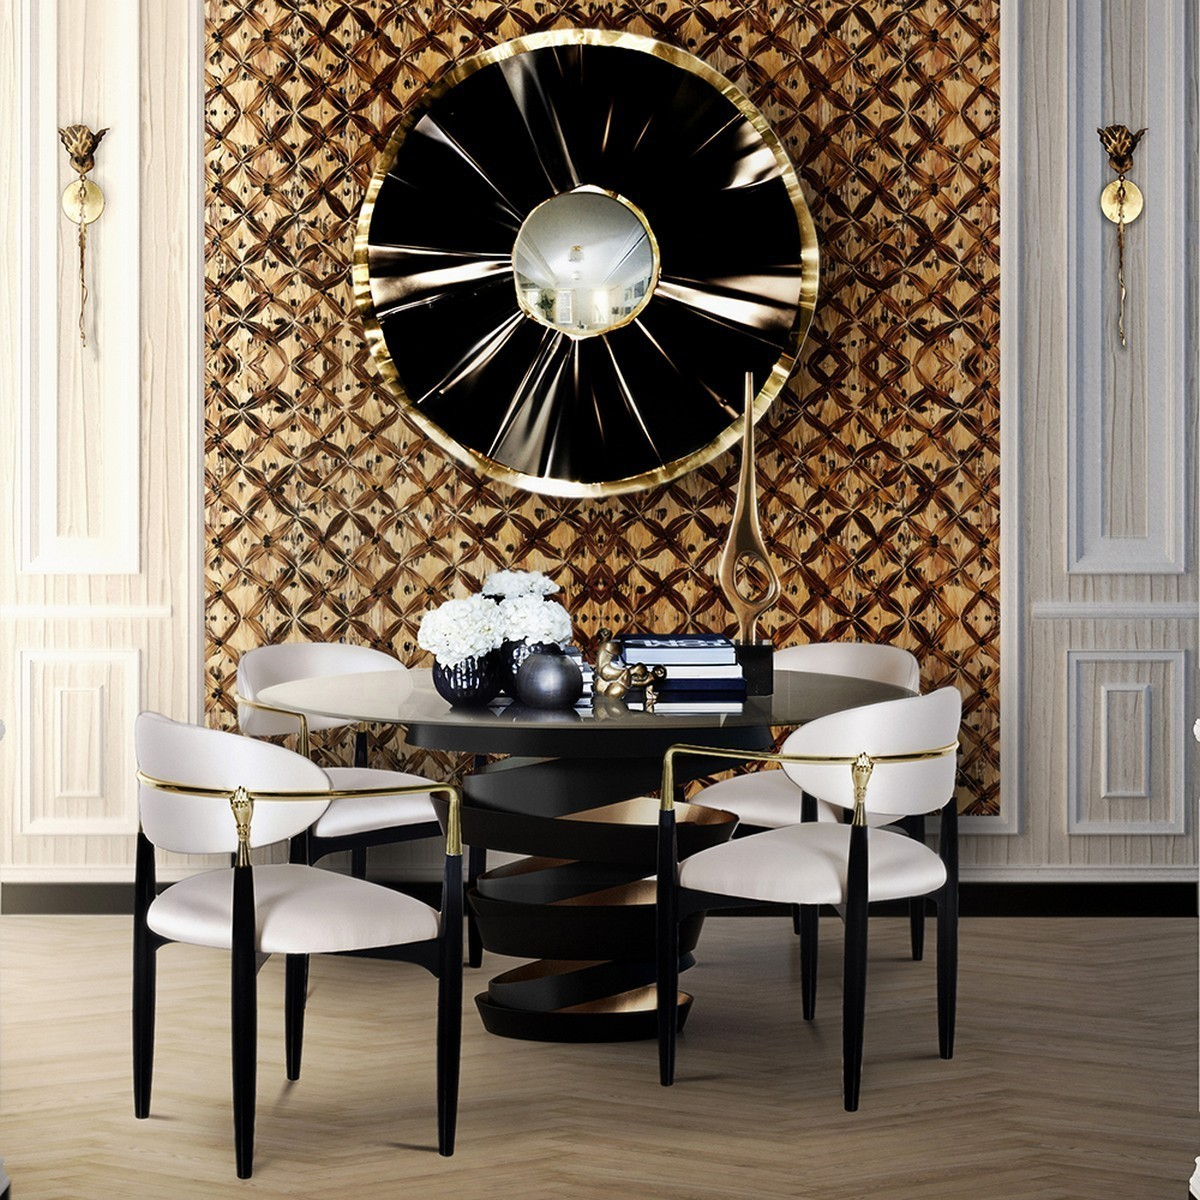 Exclusive Design: Top Round Dining Tables exclusive design Exclusive Design: Top Round Dining Tables intuition2